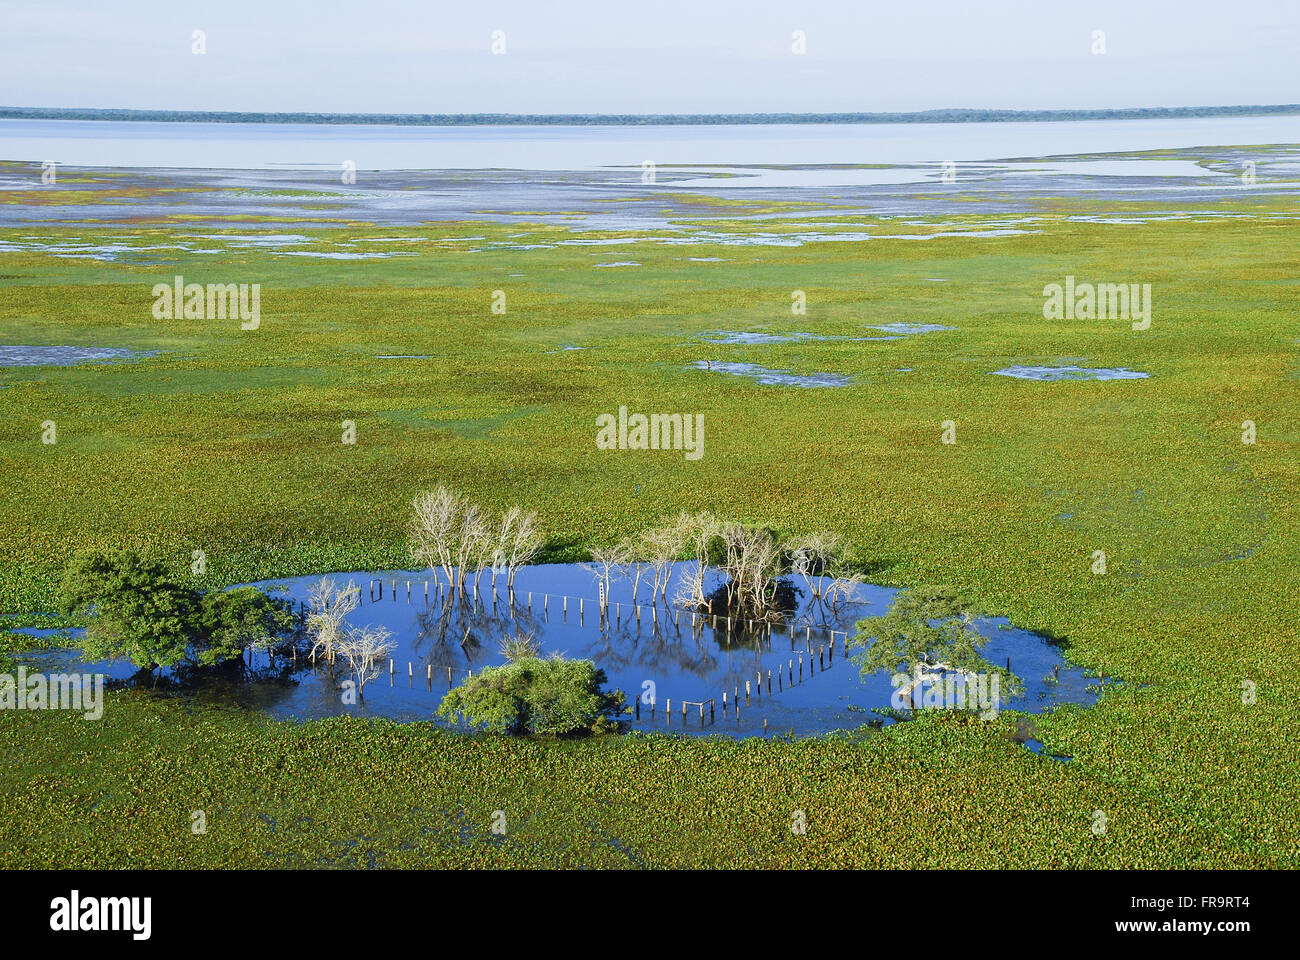 Aerial view of farm flooded by rains period - Pantanal of Barao de Melgaco - Stock Image